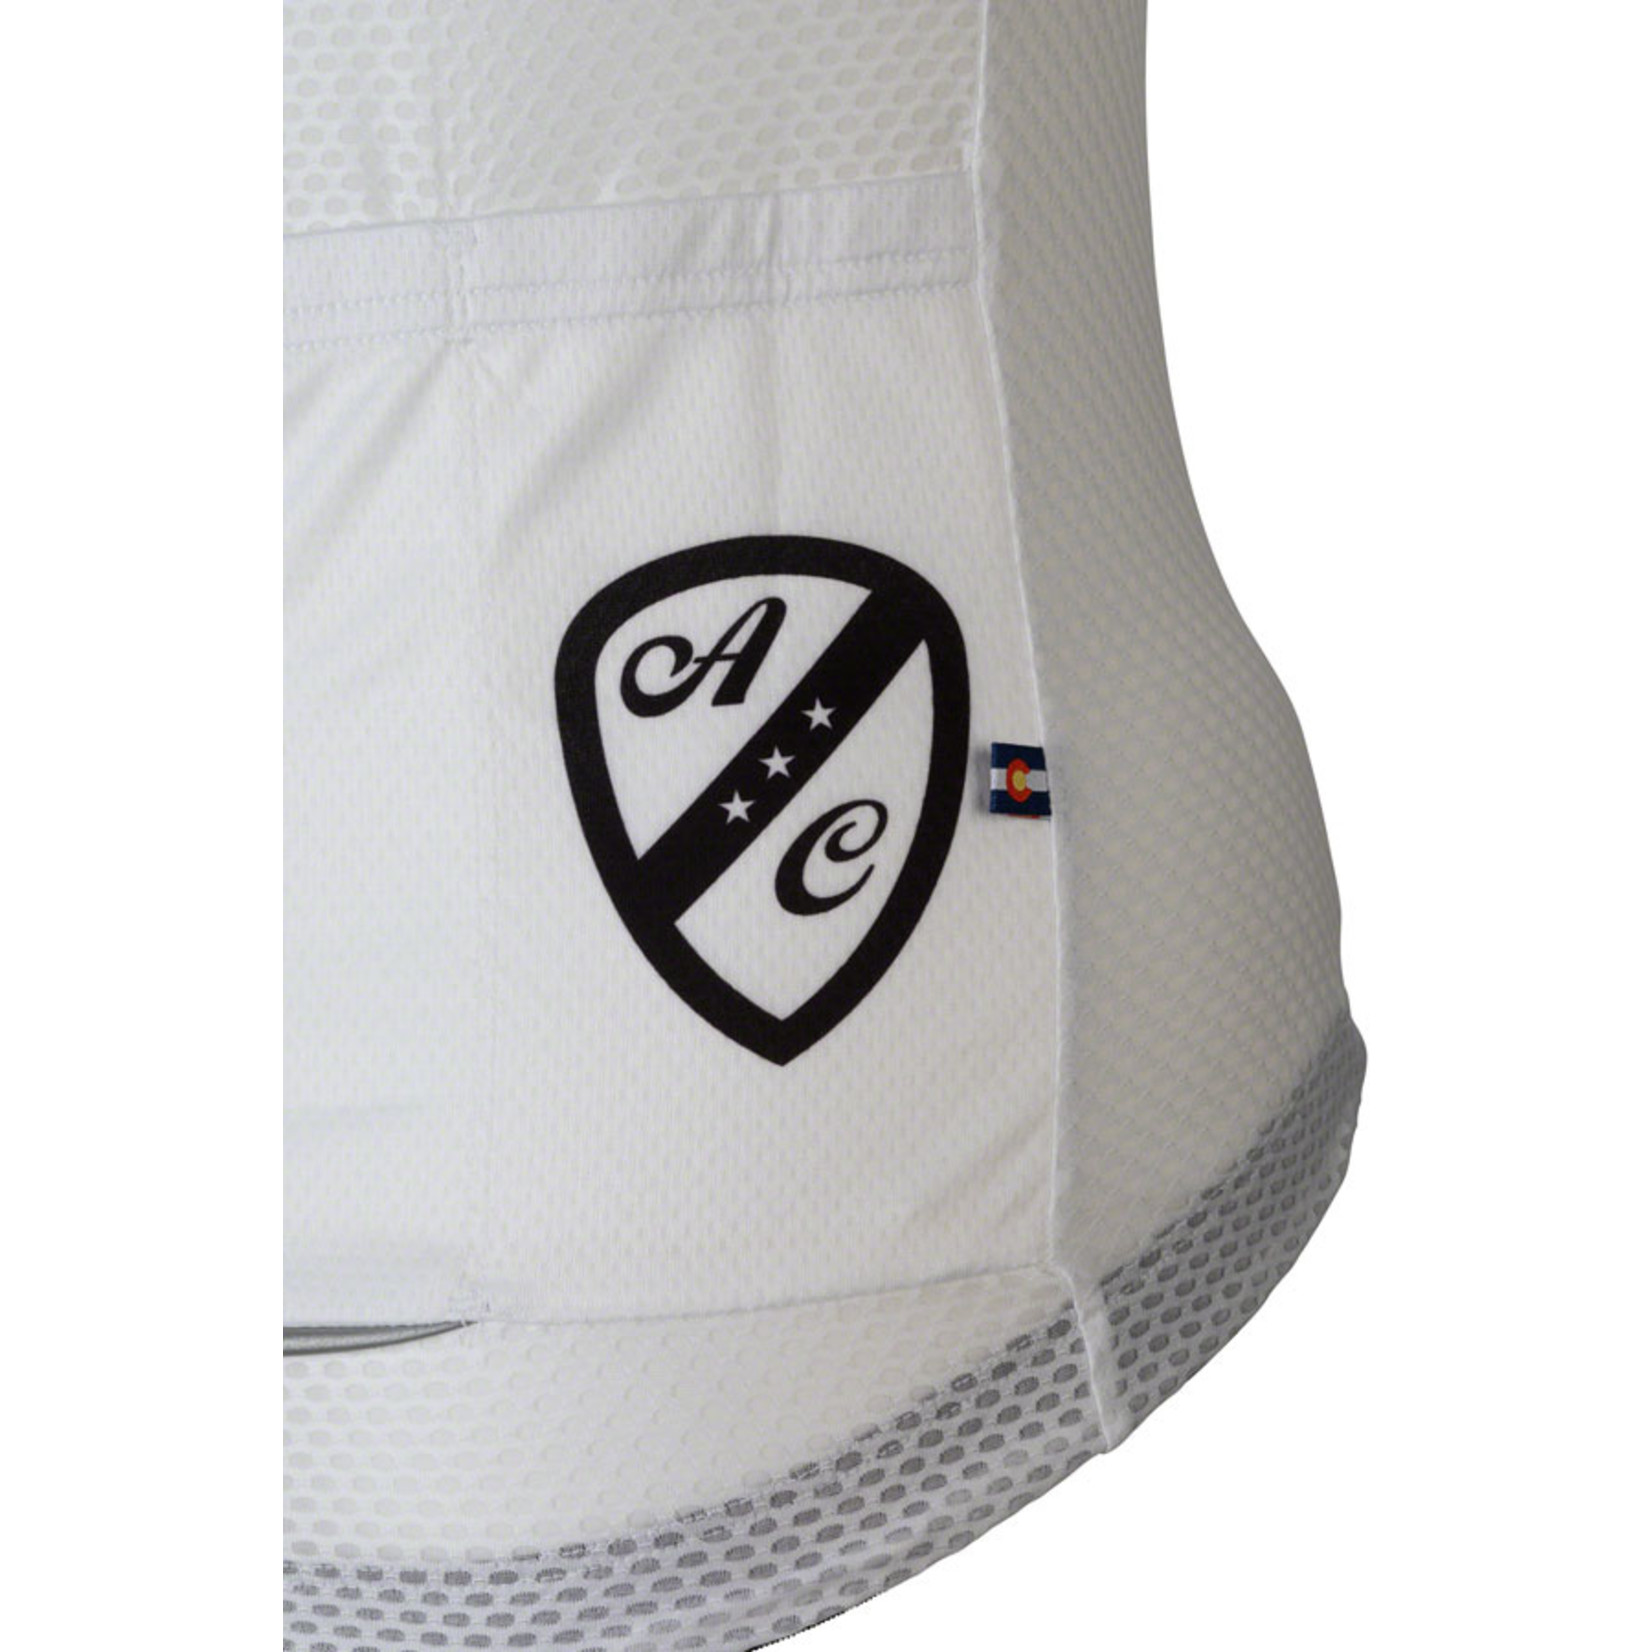 All-City All-City Classic Jersey - White/Black, Short Sleeve, Women's, Large